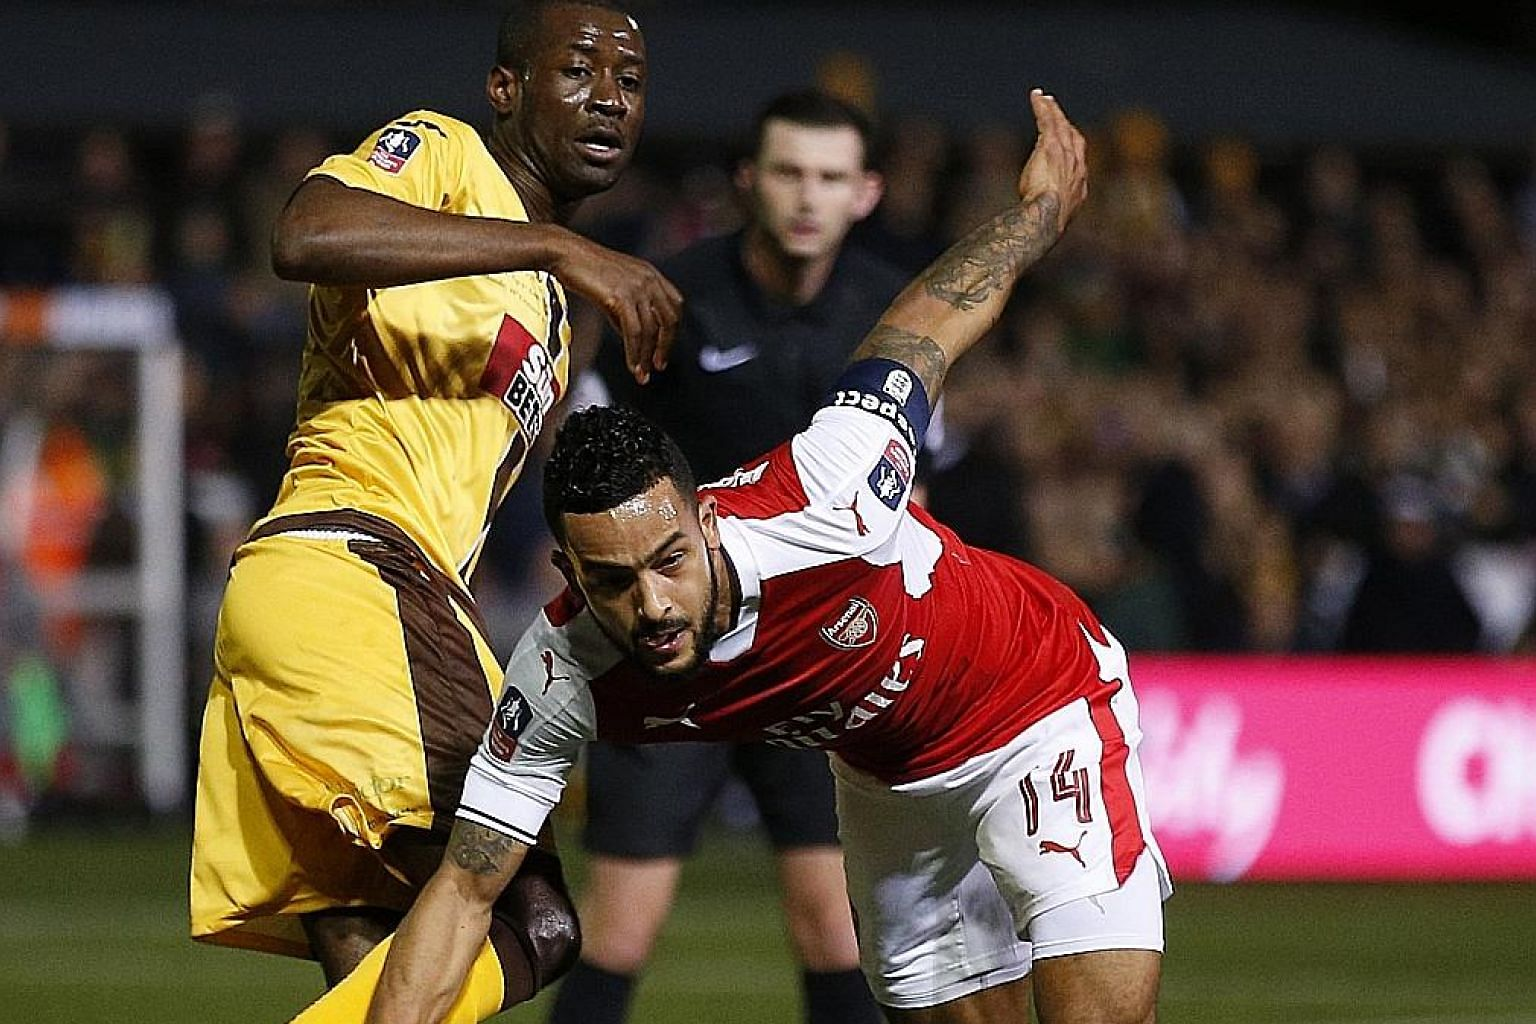 Arsenal forward Theo Walcott fighting with Sutton midfielder Bedsente Gomis for the ball. He scored his 100th goal for the Gunners when he netted in the 55th minute.